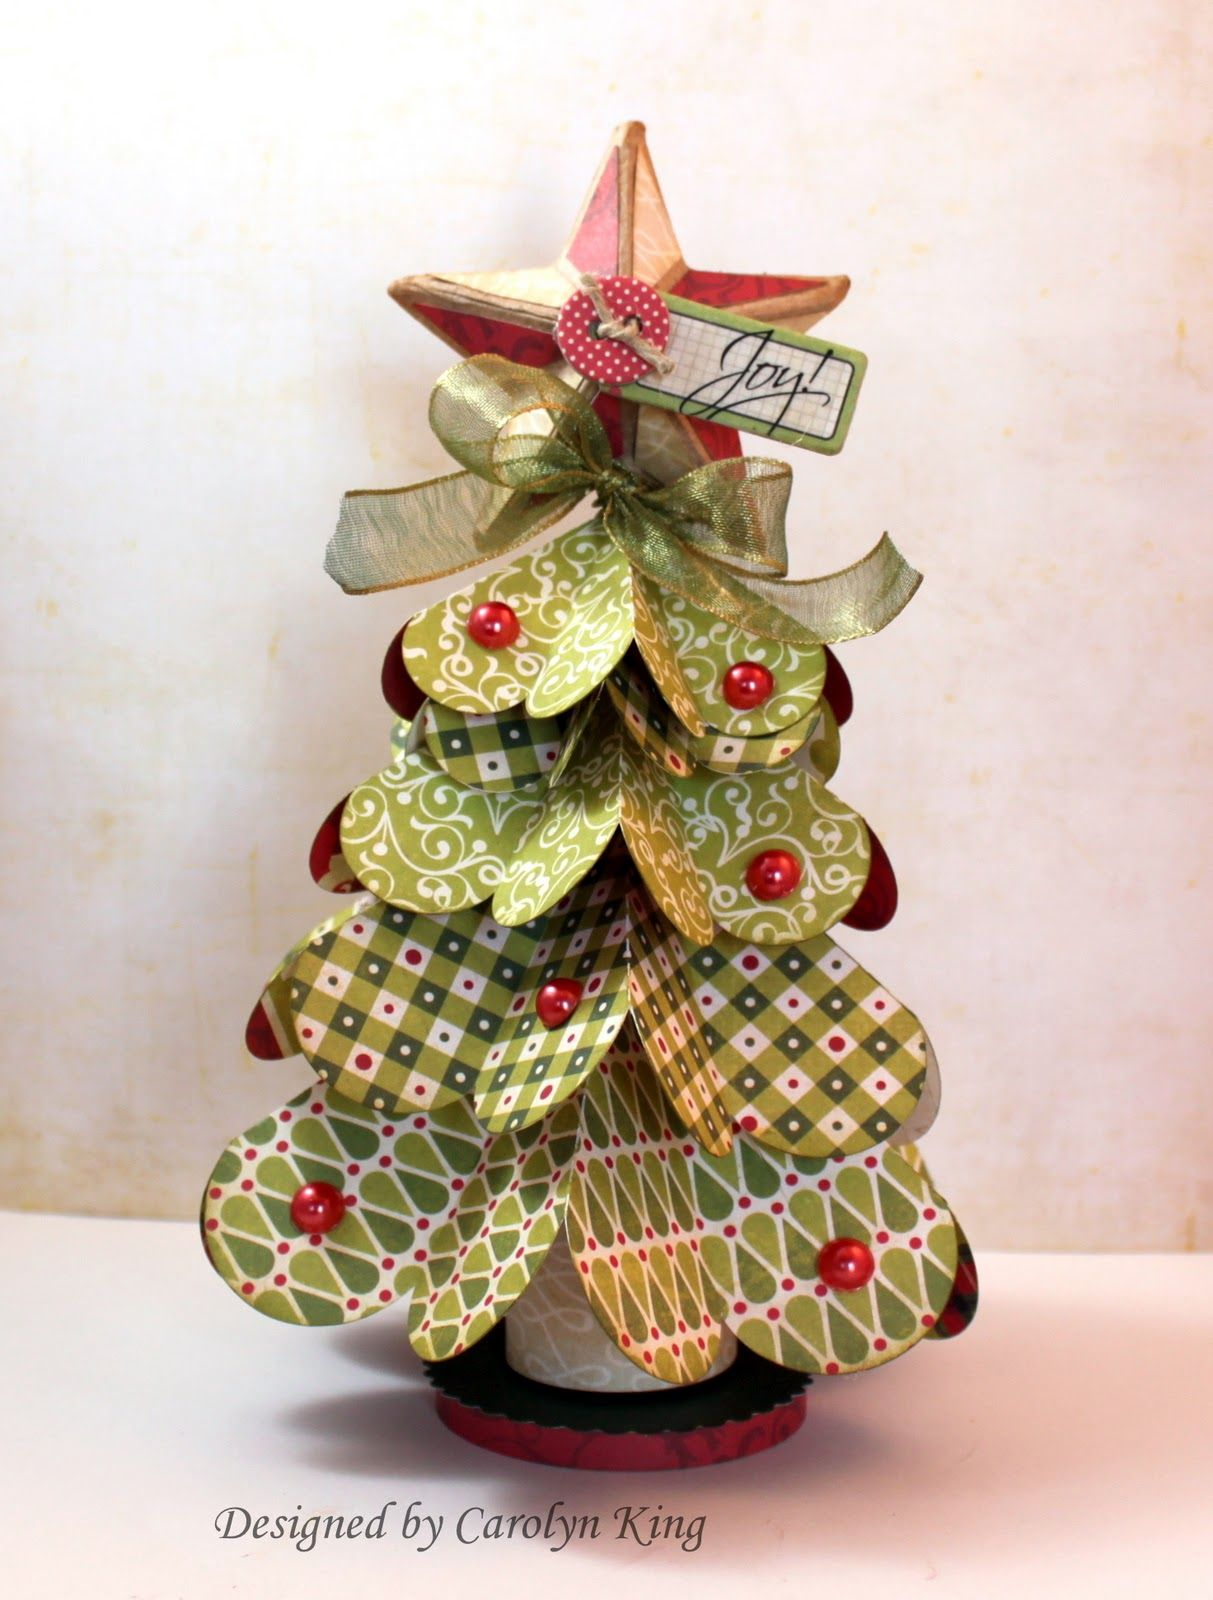 xmas decorations made out of paper